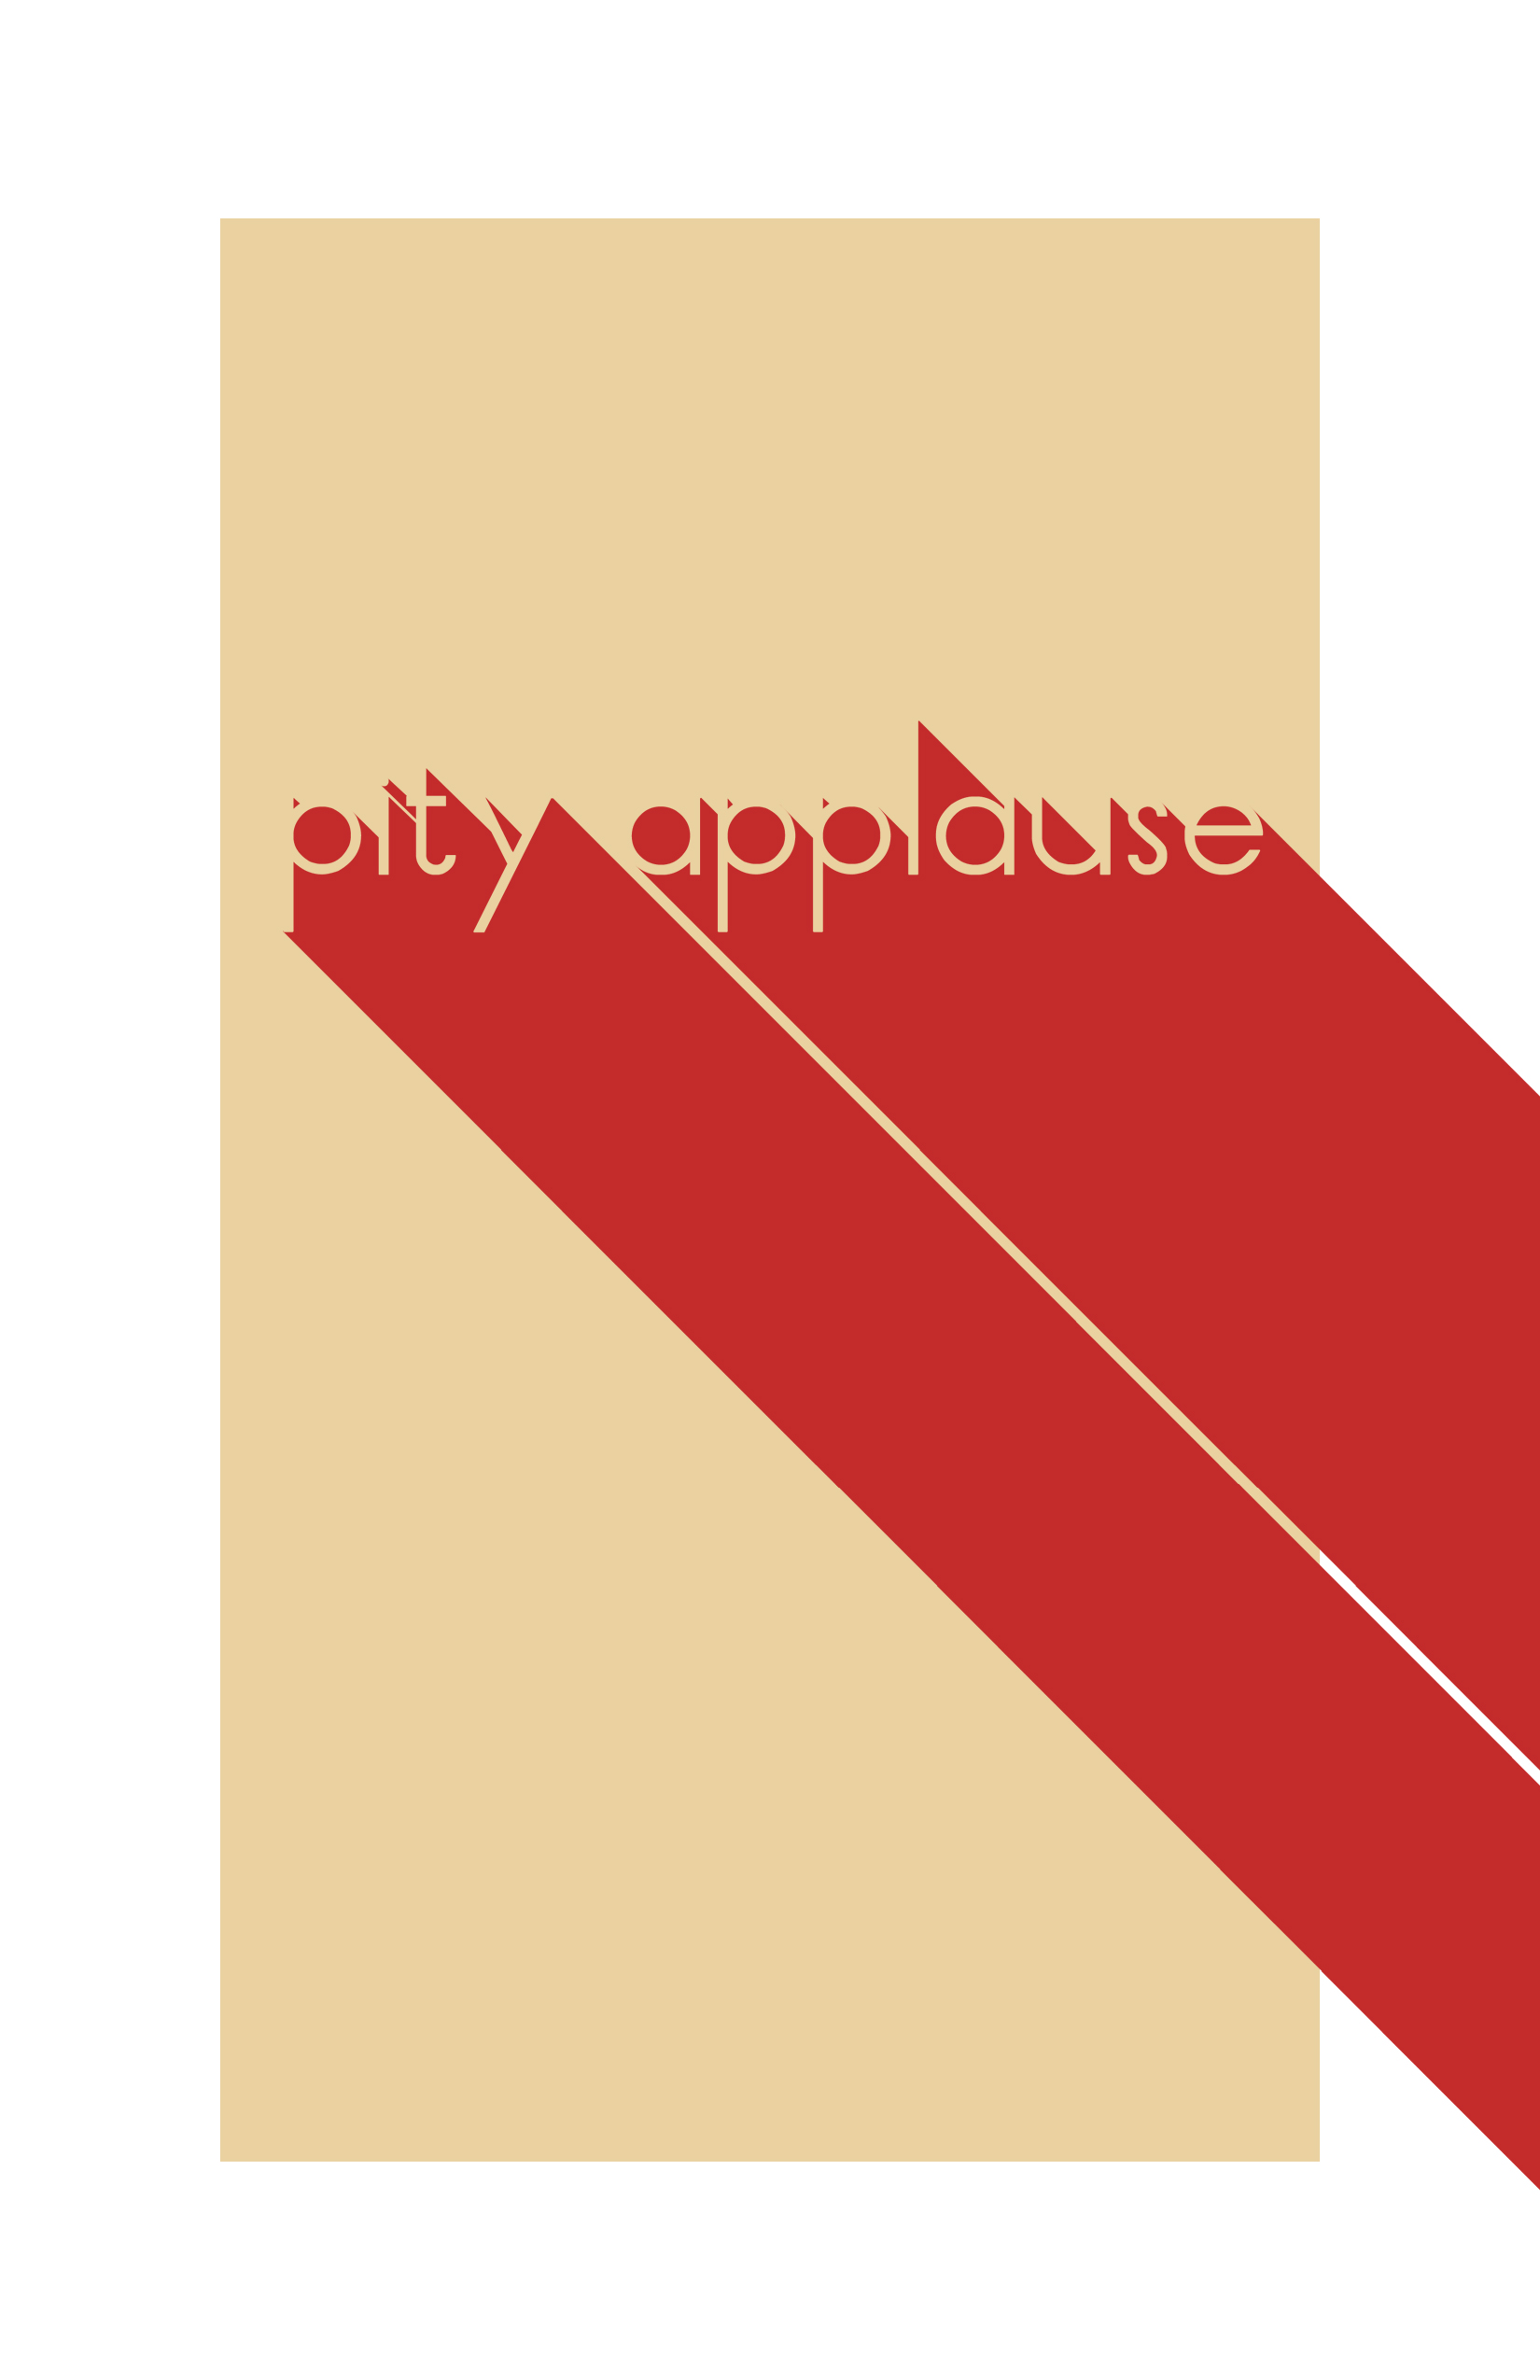 Pity Applause (2016)